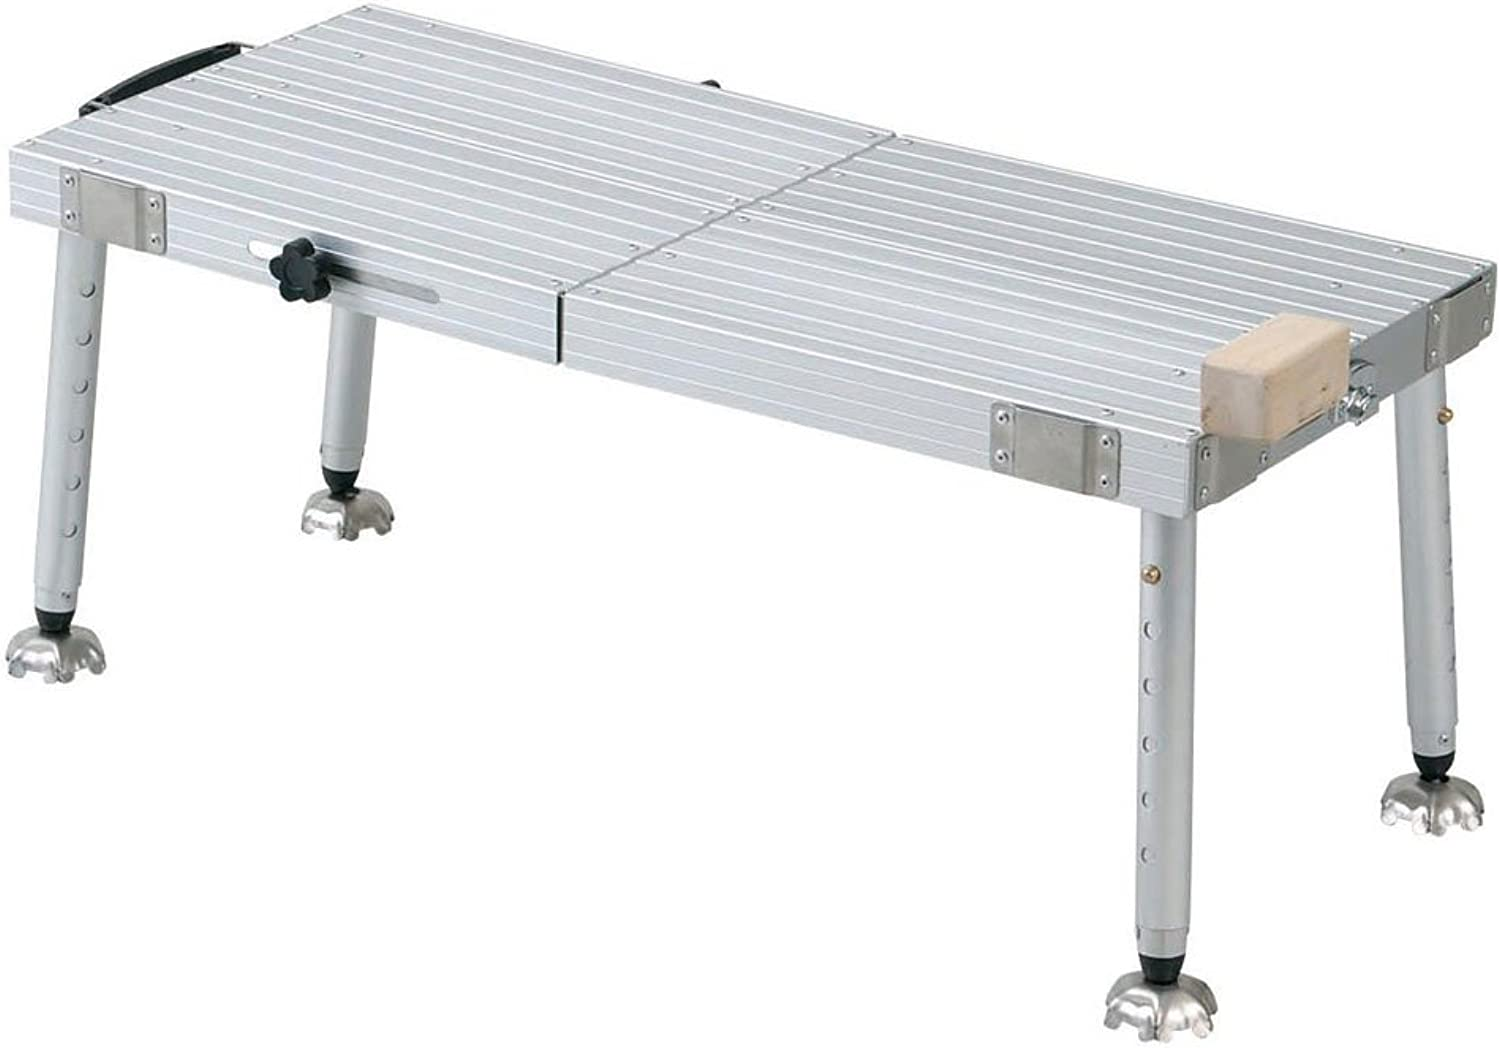 Pro Marine (PRO MARINE) Al spatula table miniangle type S AHC341S